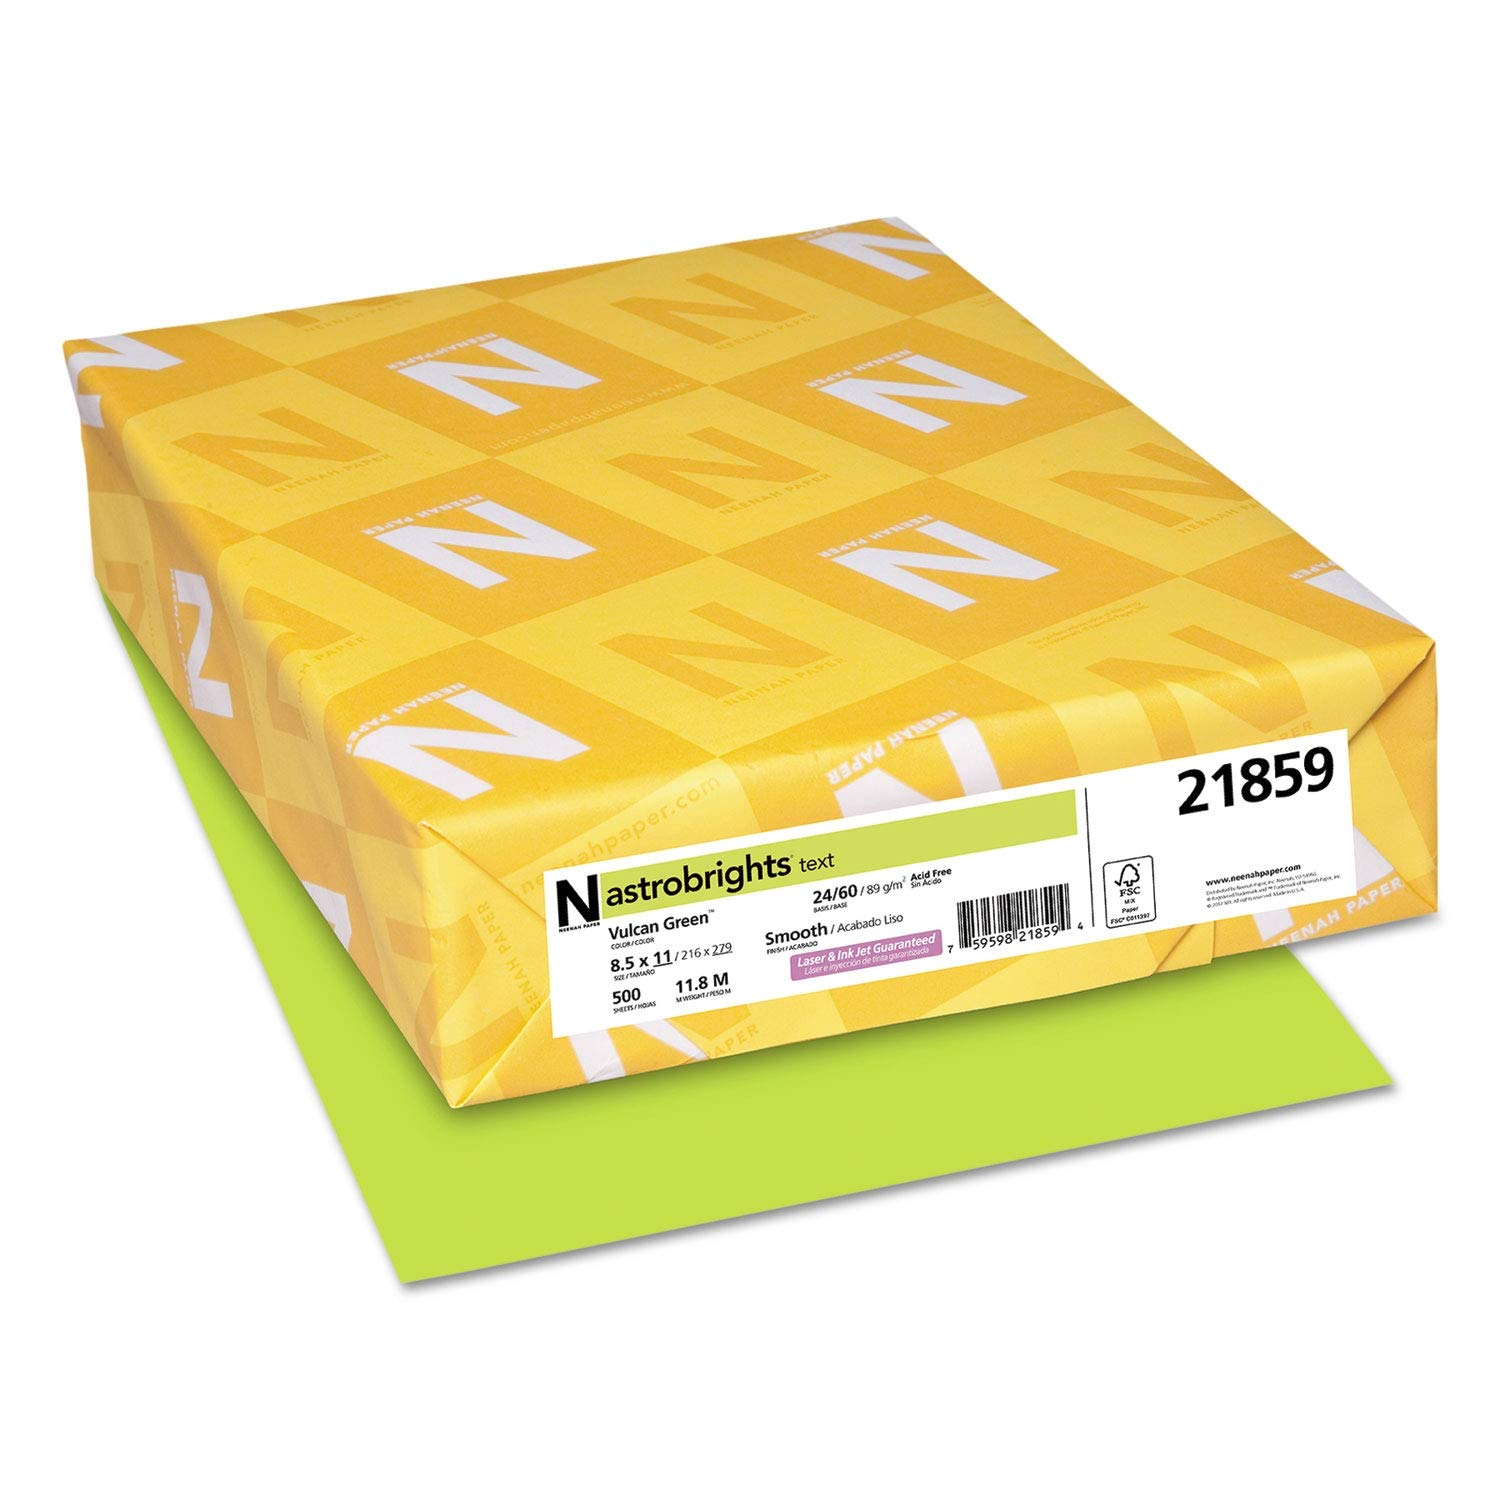 Astrobrights Color Paper, 24lb, 8 1/2 x 11, Vulcan Green, 500 Sheets - 21859 (Pack of 2)